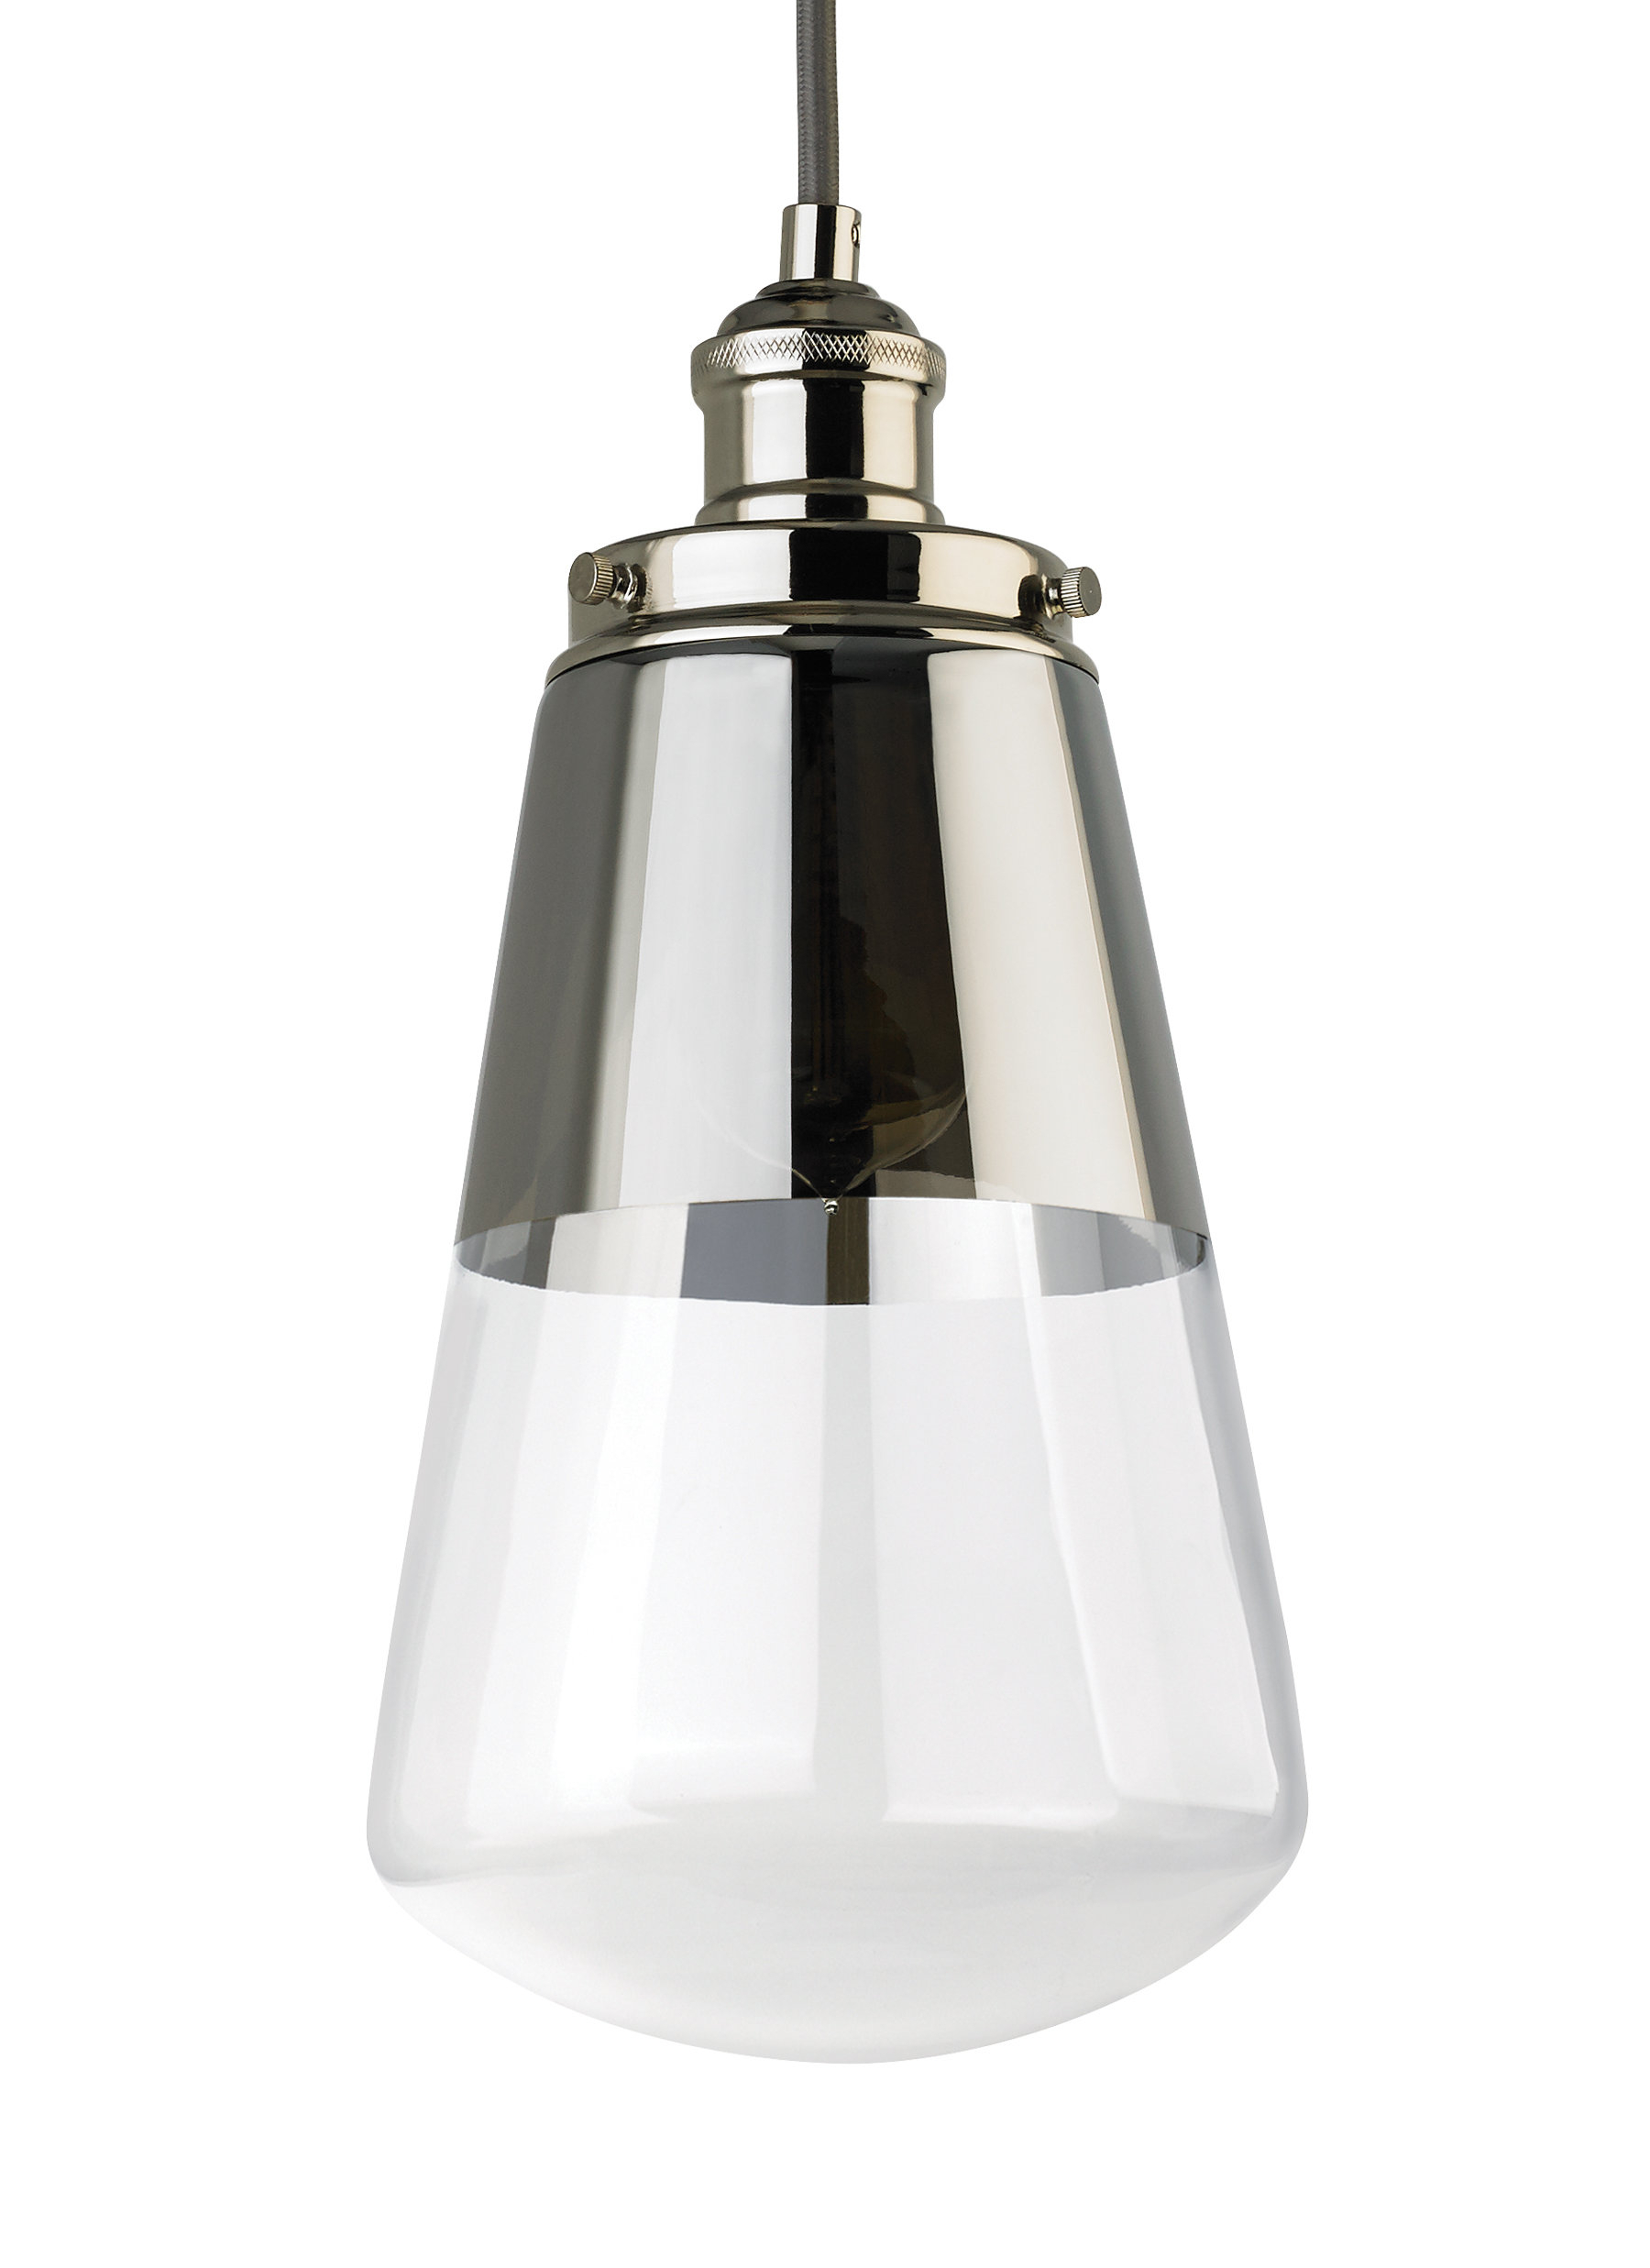 Jarne 1 Light Bulb Pendant Throughout Well Known Ammerman 1 Light Cone Pendants (Gallery 11 of 20)